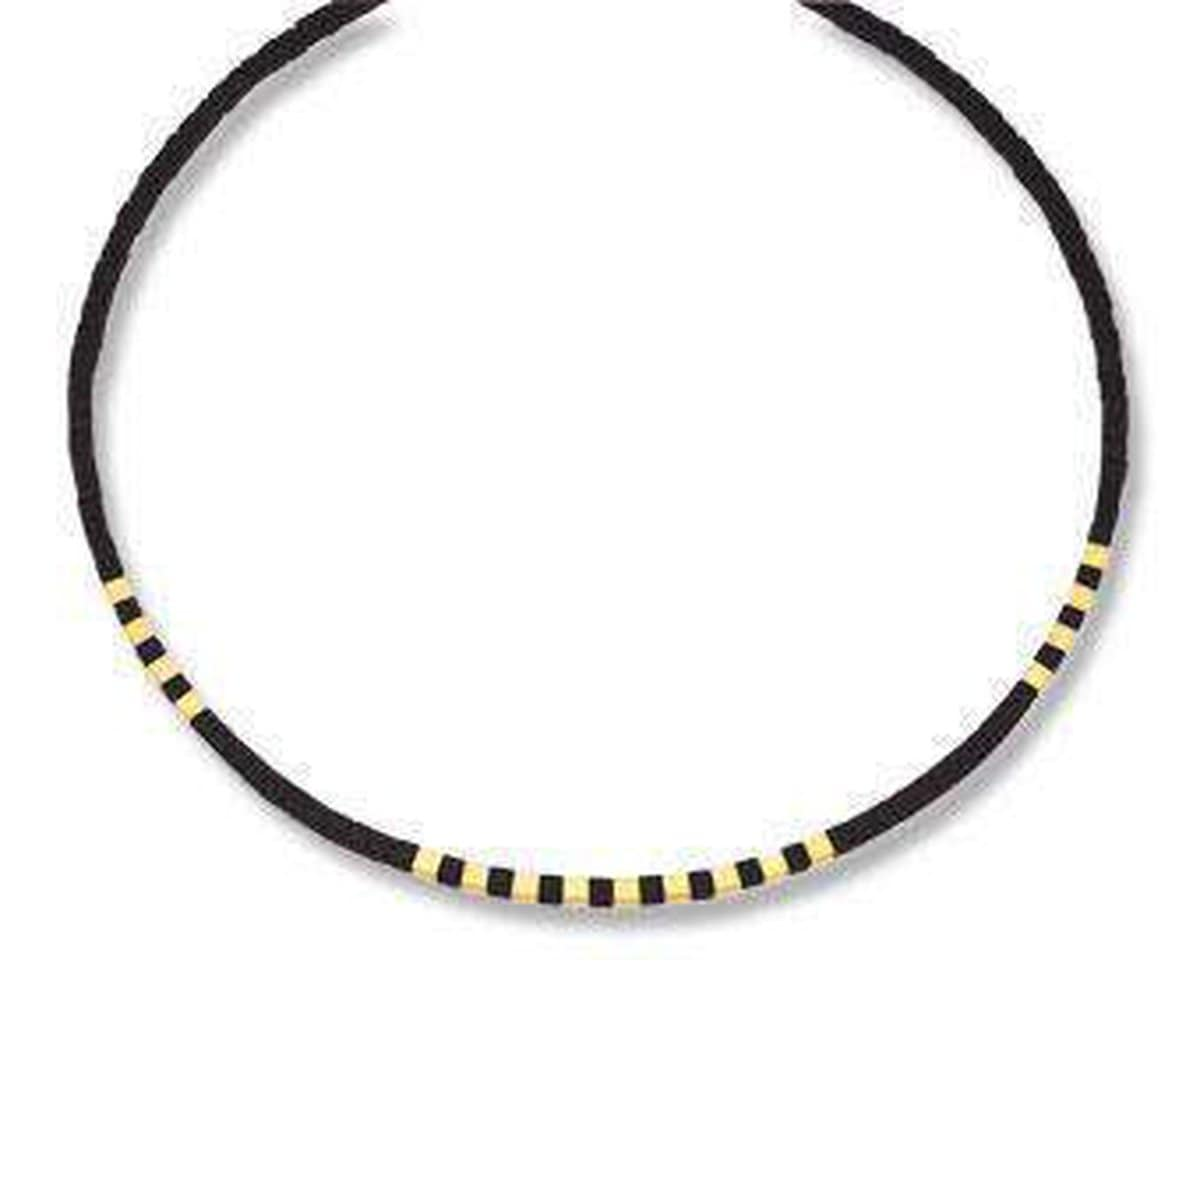 Cubis Onyx Necklace - 84446896-Bernd Wolf-Renee Taylor Gallery